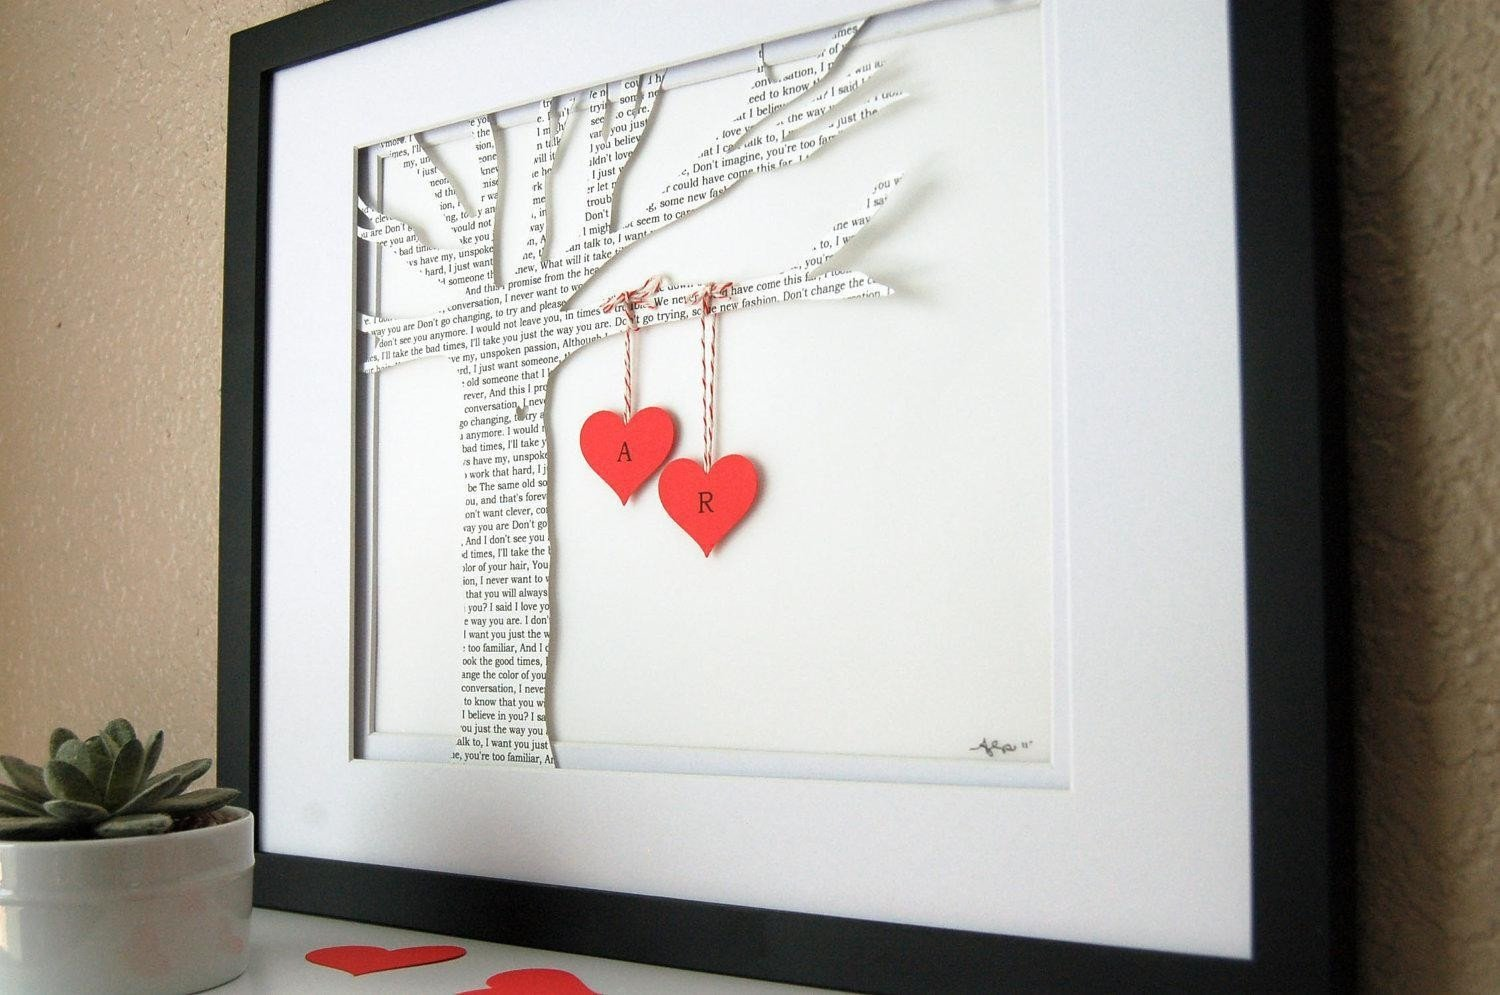 10 Beautiful 2Nd Year Wedding Anniversary Gift Ideas creative cotton gift ideas picture gallery website 2nd wedding 7 2021